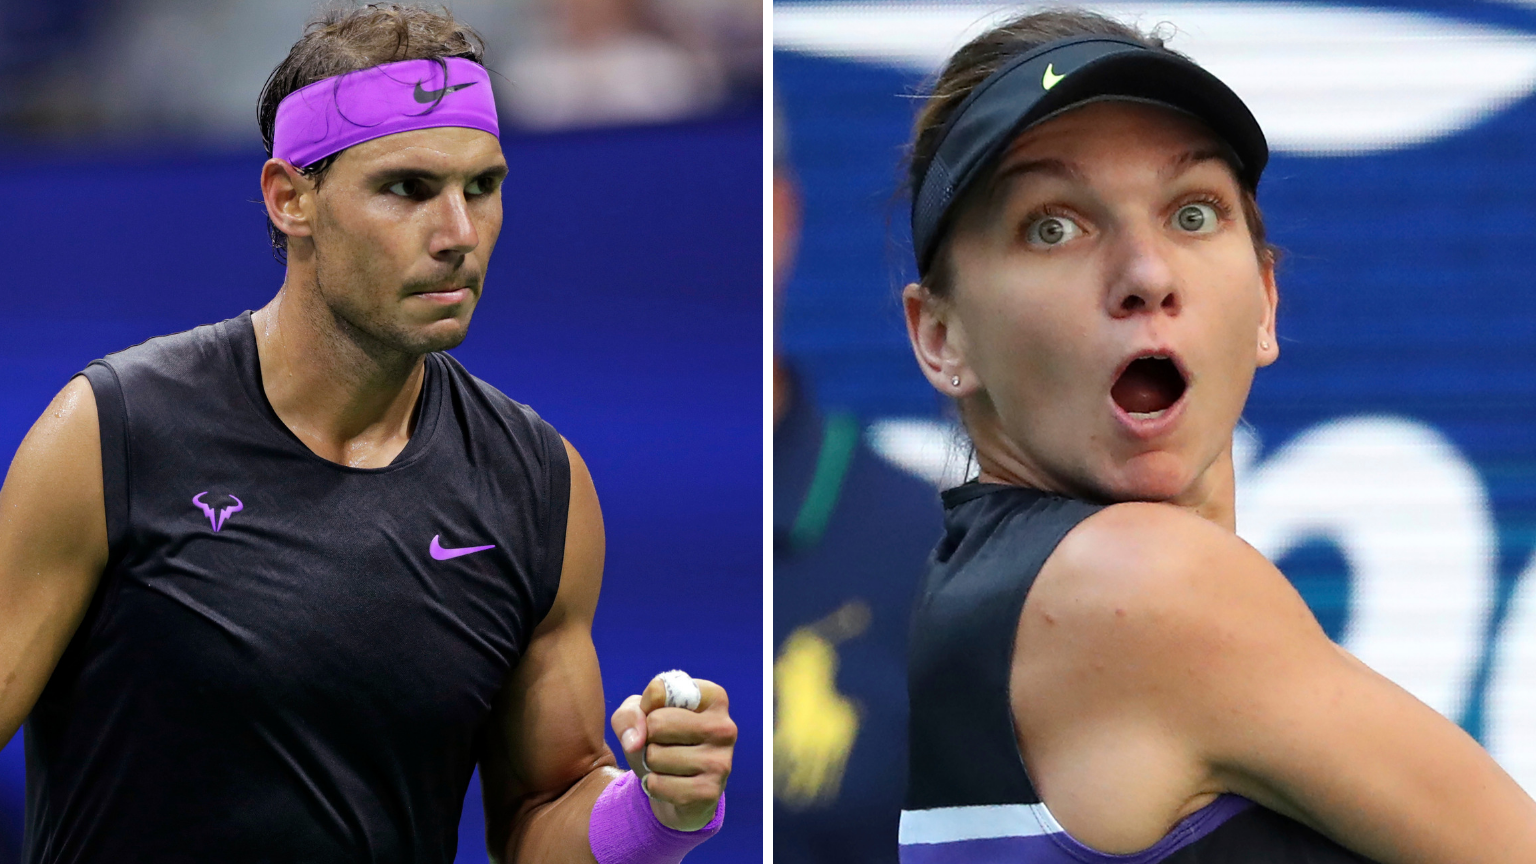 US Open: Nadal Gets Walkover, Halep Crashes Out